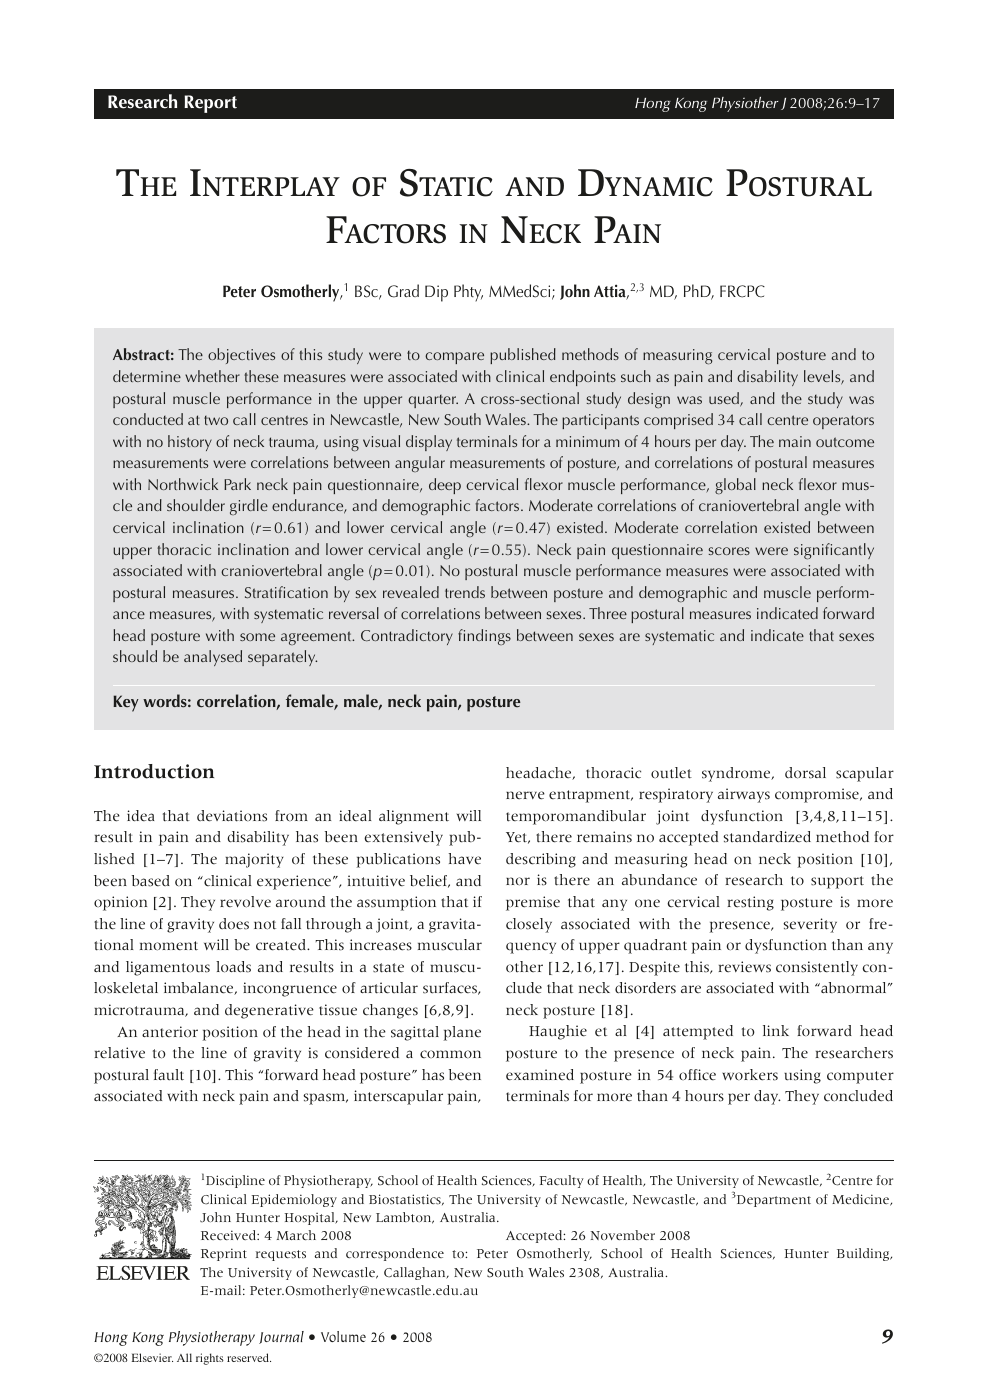 The Interplay of Static and Dynamic Postural Factors in Neck